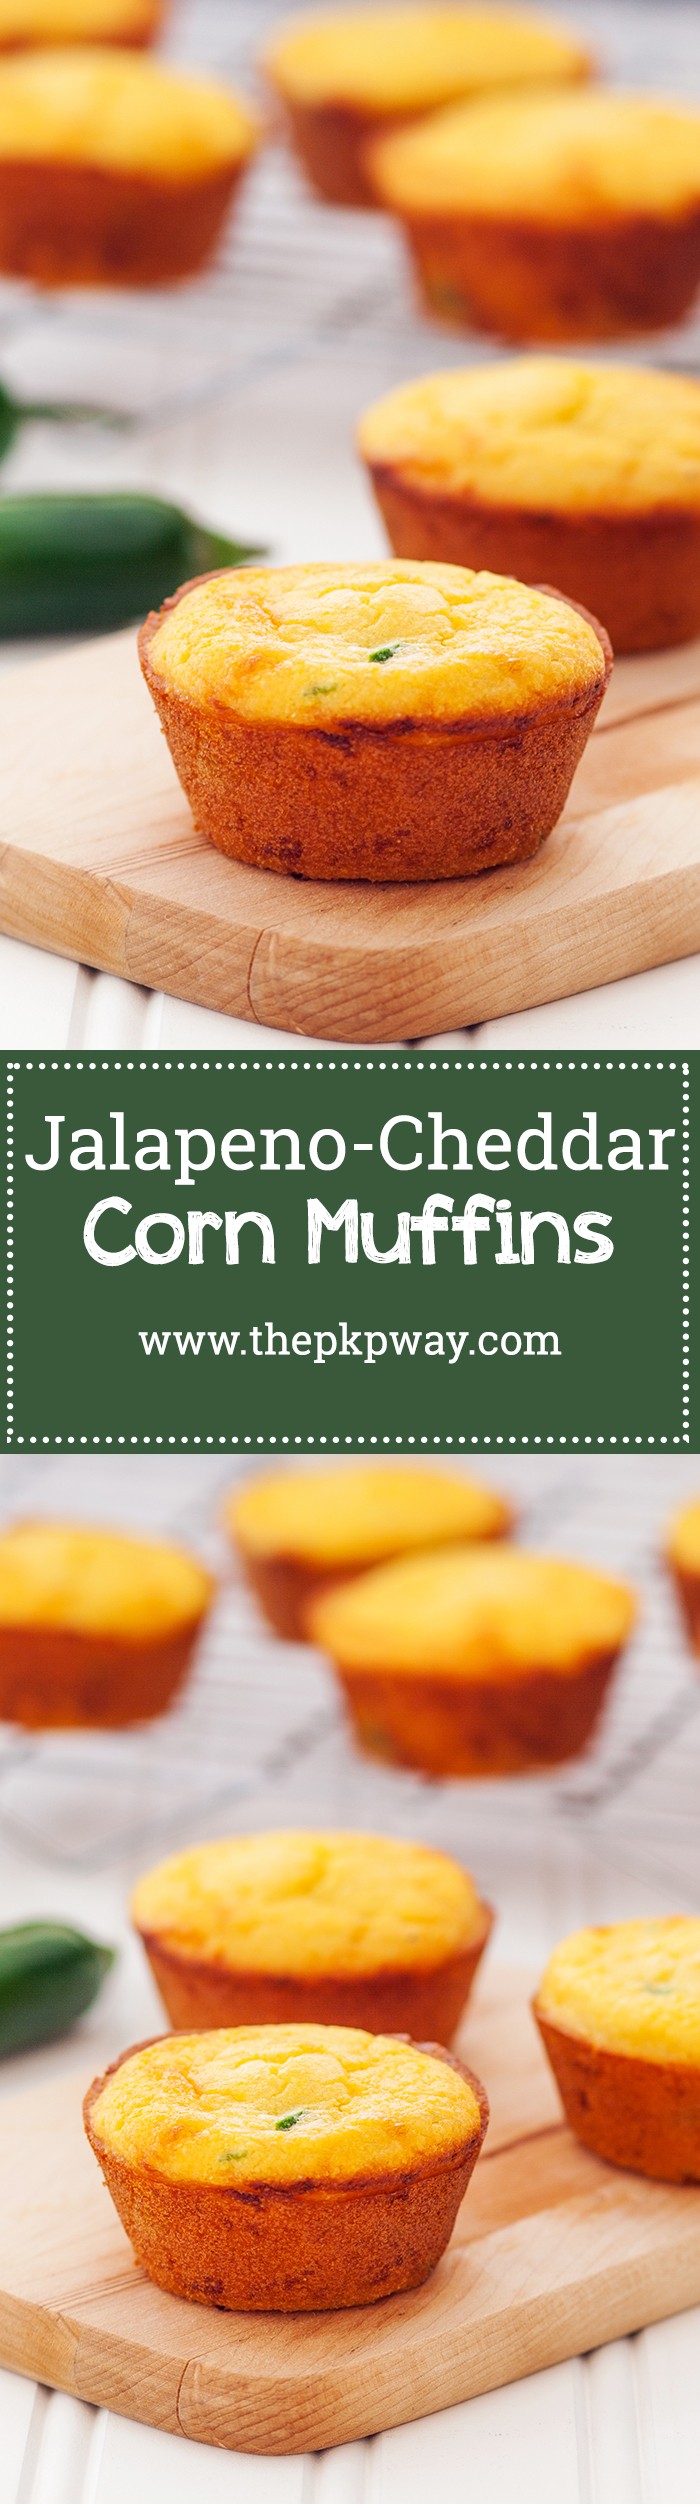 Jalapeño-cheddar cornbread muffins. Crackly exterior, ultra-moist interior, and a punch of cheesy and jalapeño-y flavor!